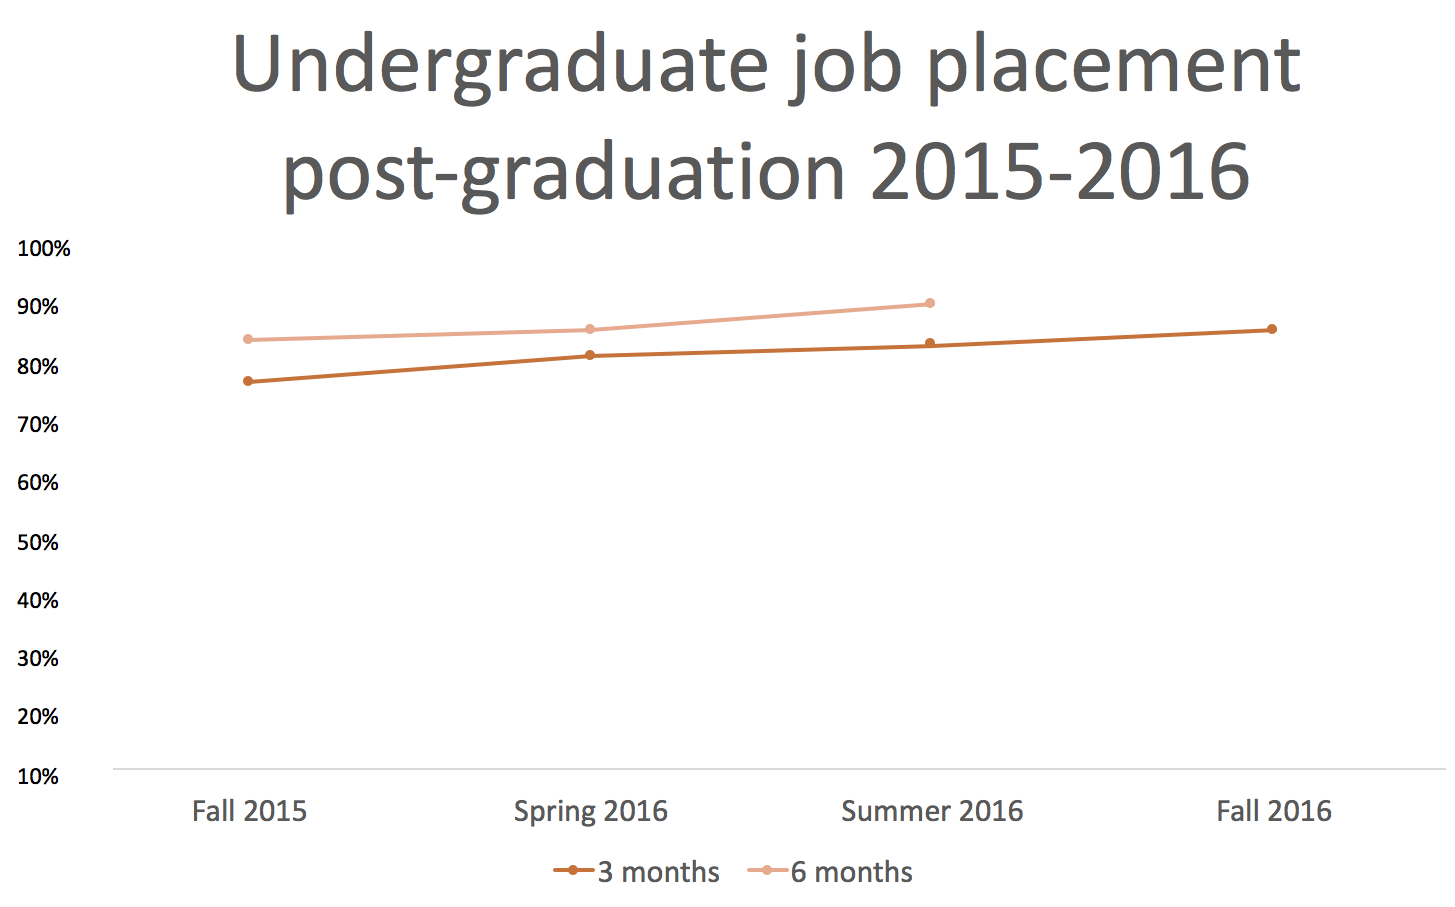 undergrad-job-placement-post-graduation-2015-2016